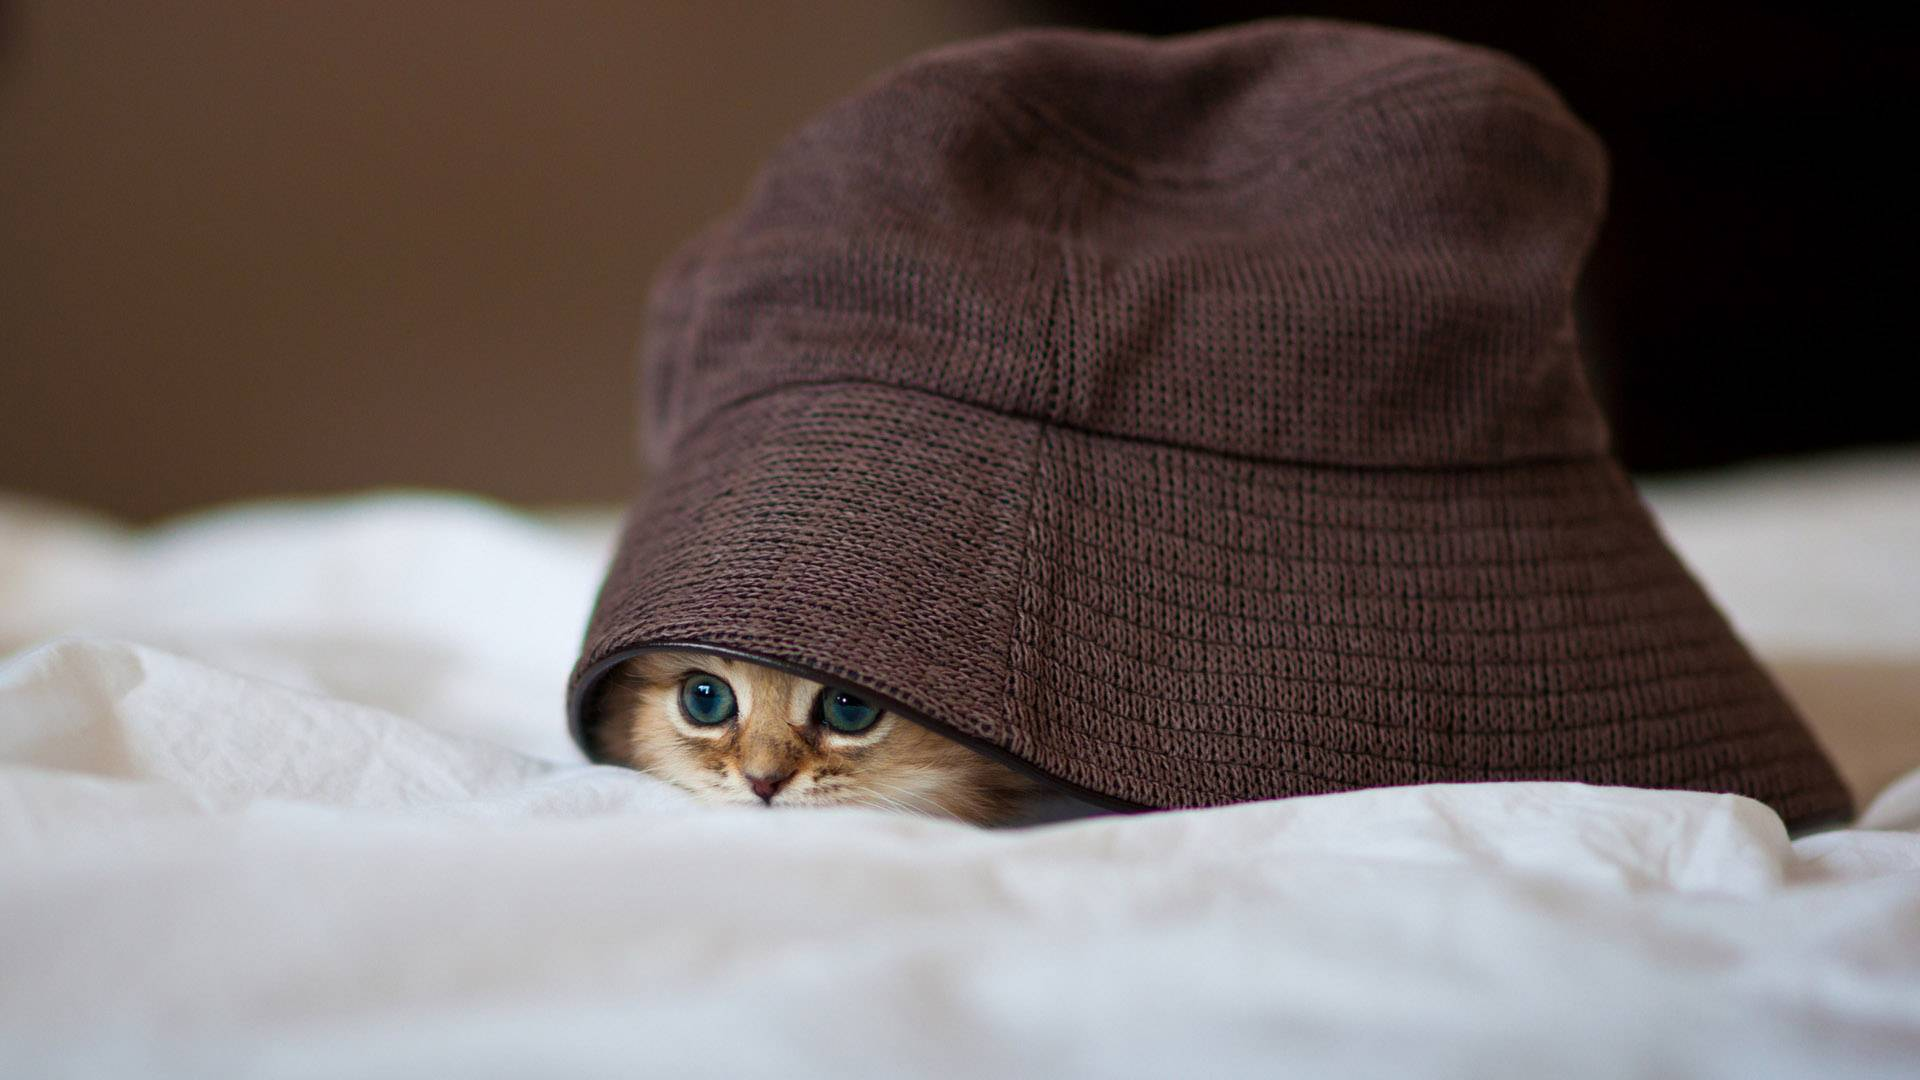 How To Coax Out a Cat That is Always Hiding